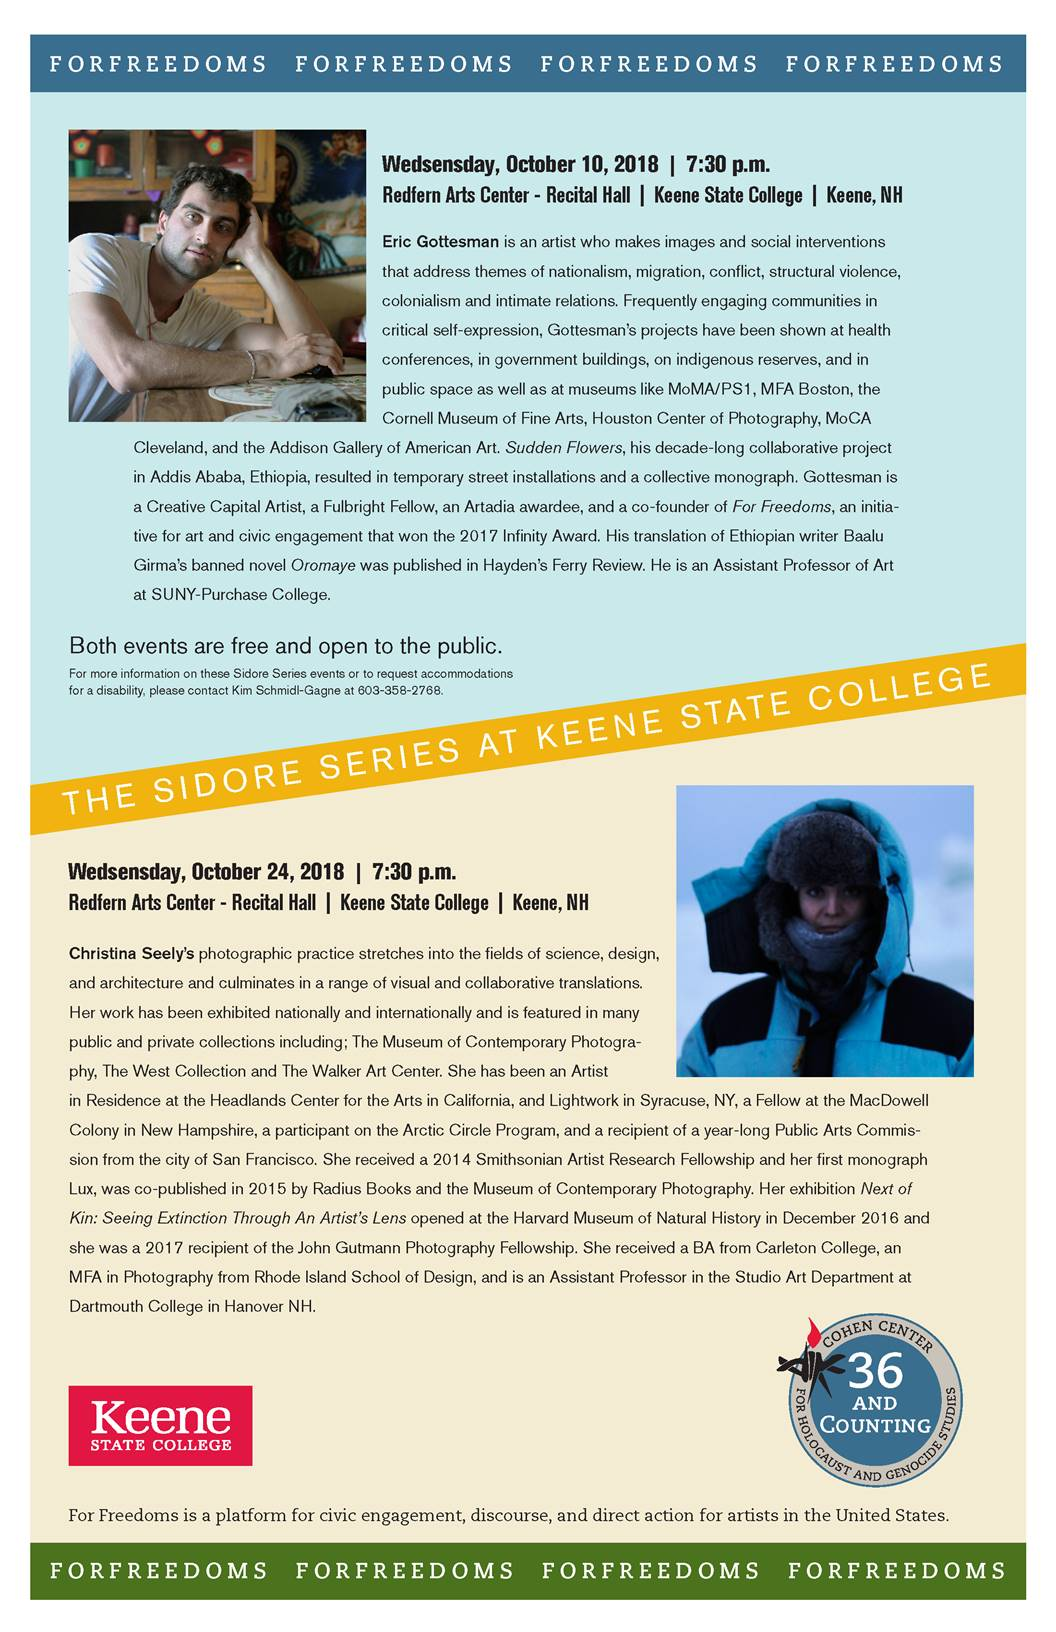 Keene State College to host lecture with visiting artist Christina Seely